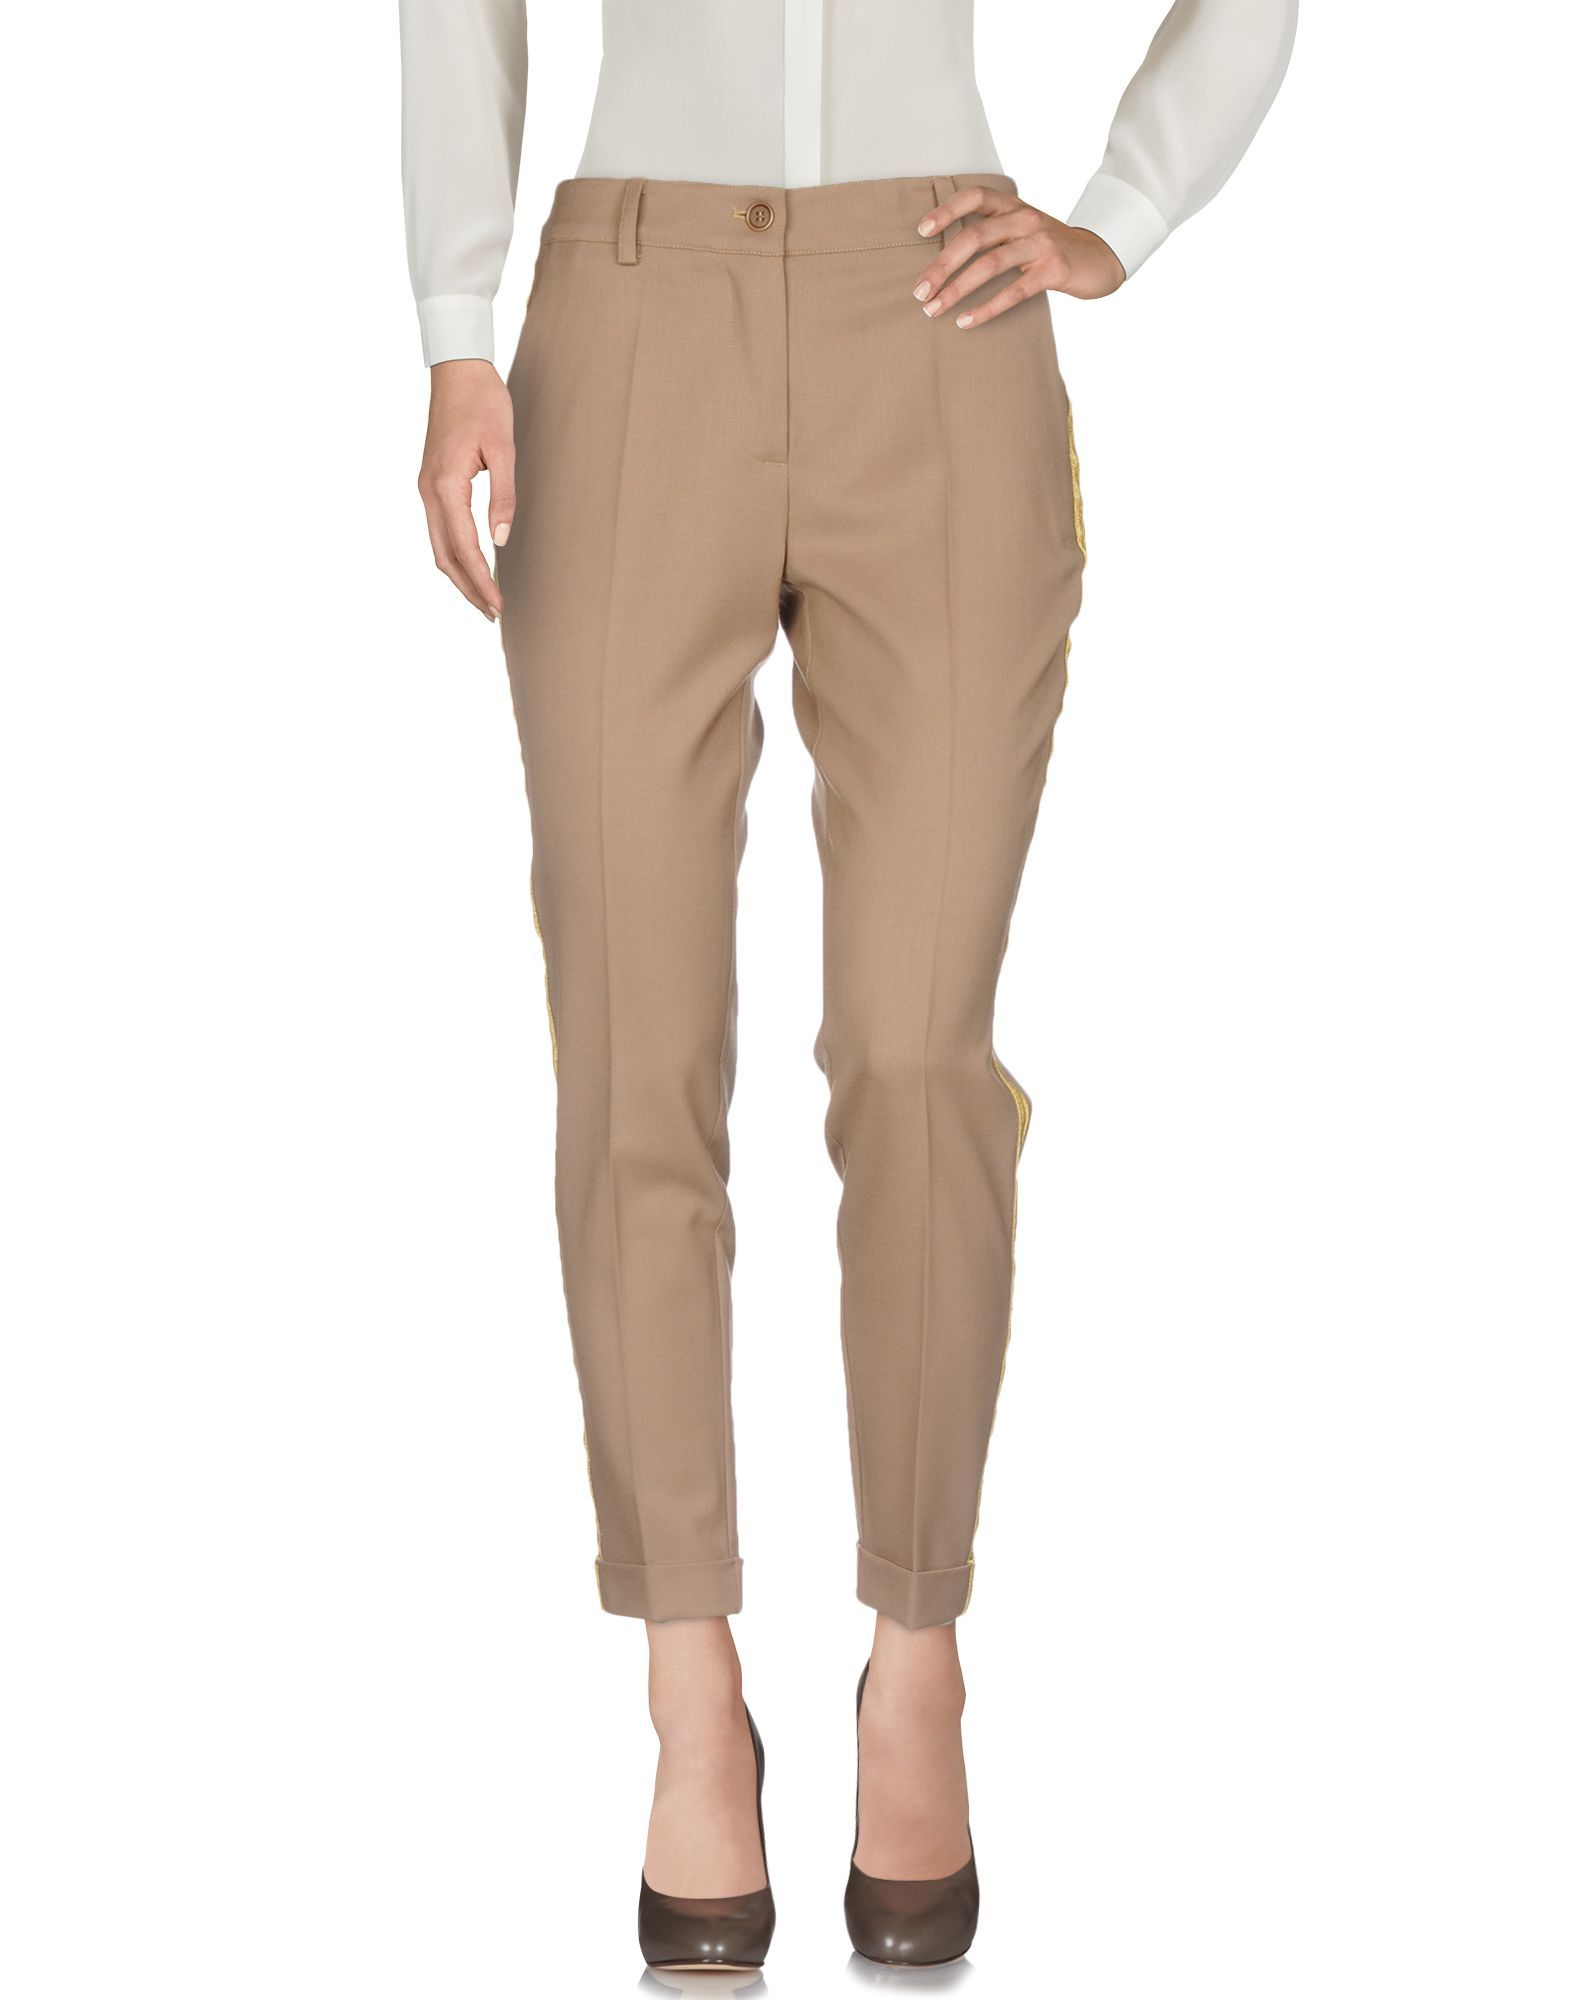 P.A.R.O.S.H. Camel Virgin Wool Tailored Trousers